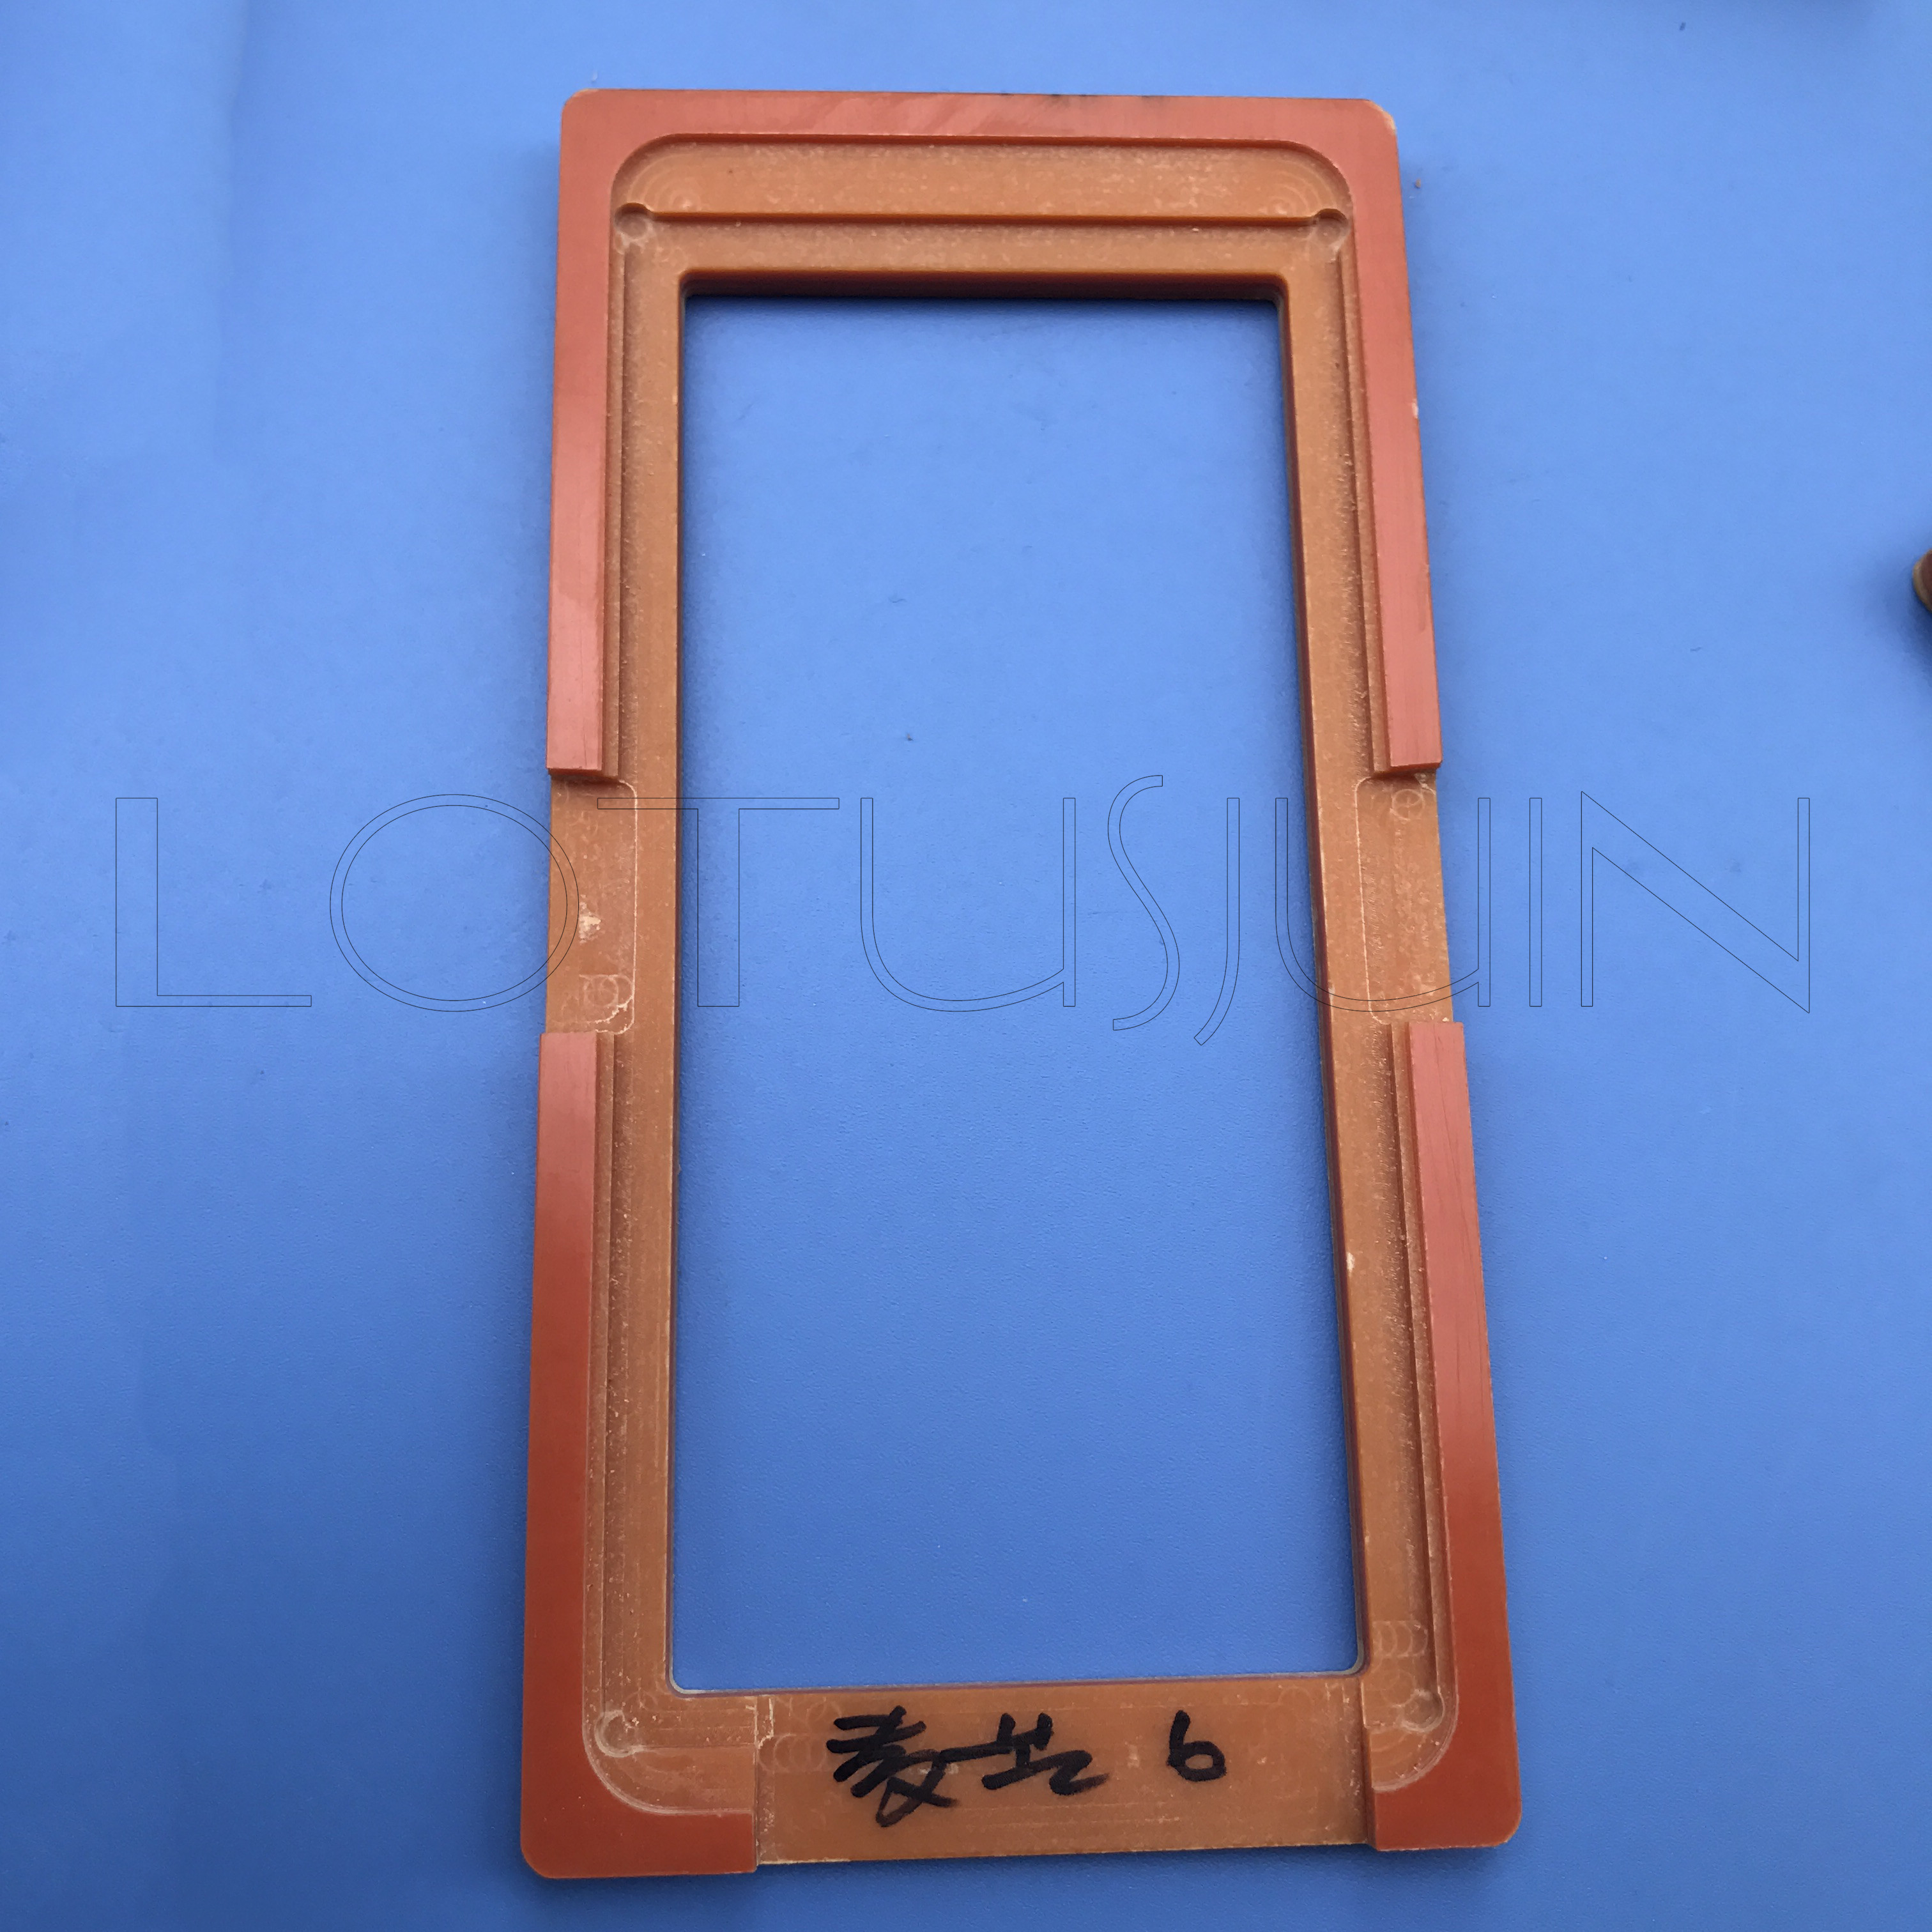 US $4.5  Precision cutting PF Glue Mould LCD screen glass Mold Holder for  Huawei Nova 2i /G10 /Honor 9i /mate 10 lite-in Mobile Phone Housings from Cellphones & Telecommunications on Aliexpress.com   Alibaba Group